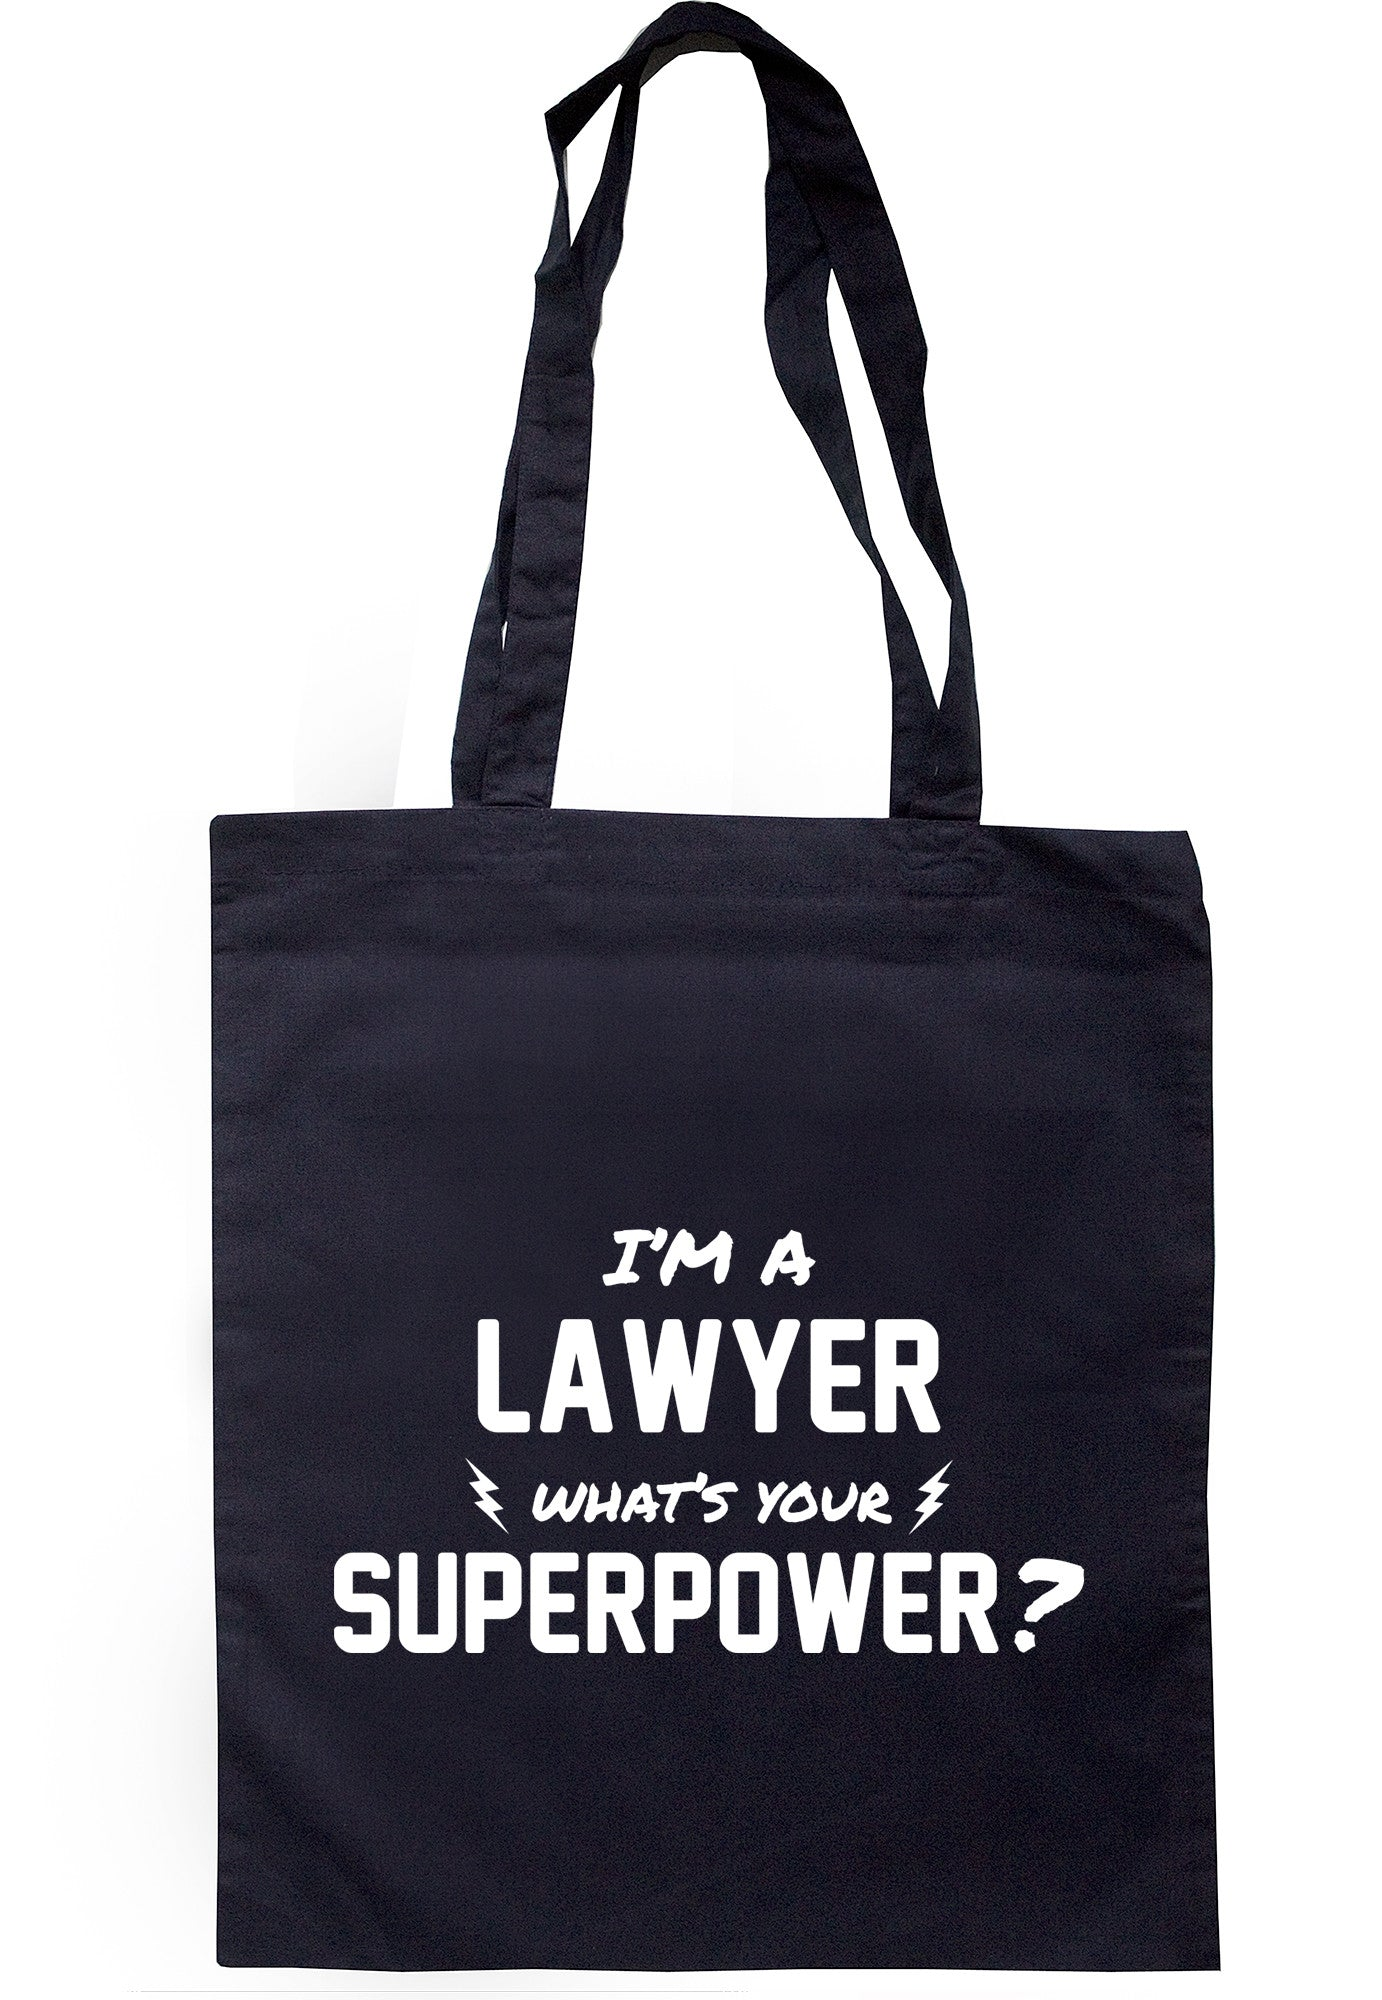 I'm A Lawyer What's Your Superpower? Tote Bag TB0525 - Illustrated Identity Ltd.